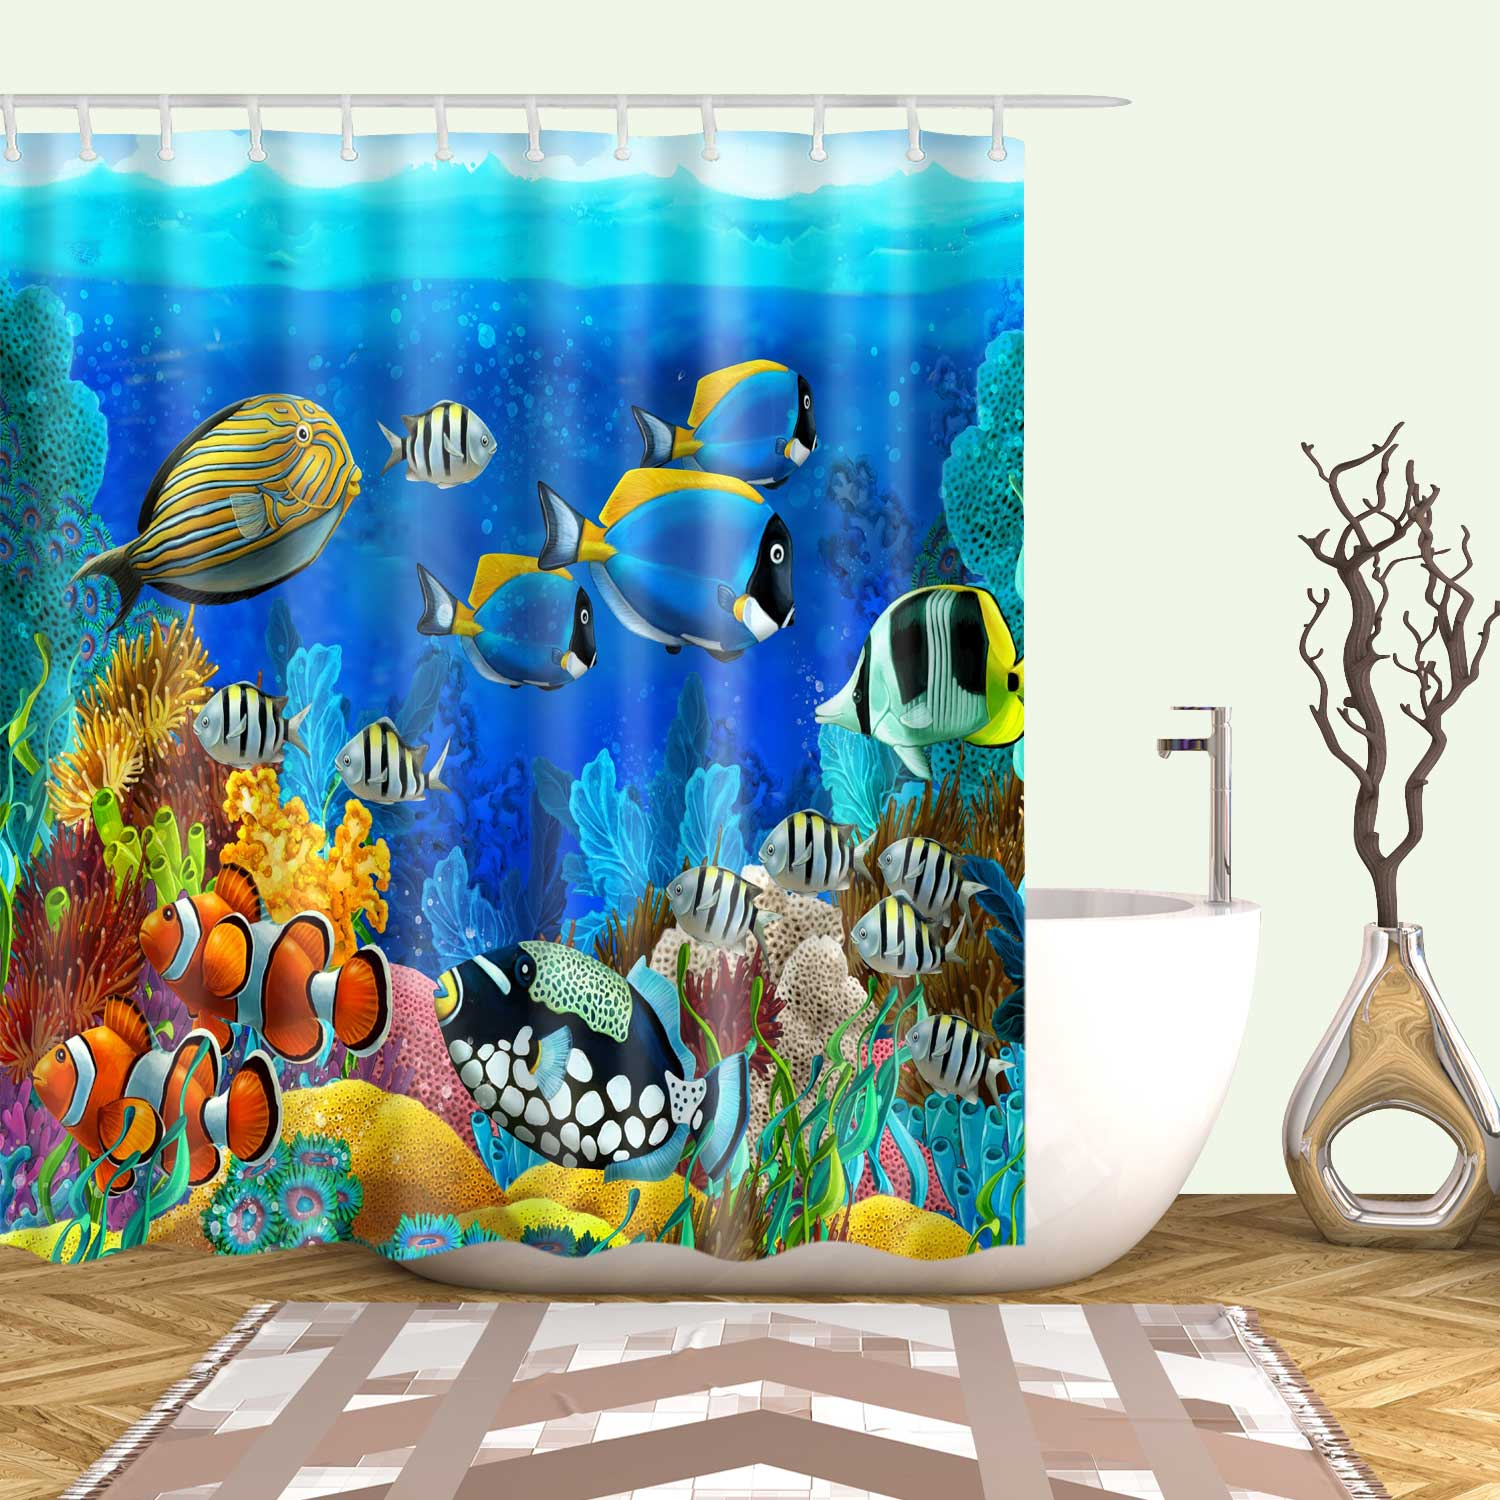 ocean coral island view with fish